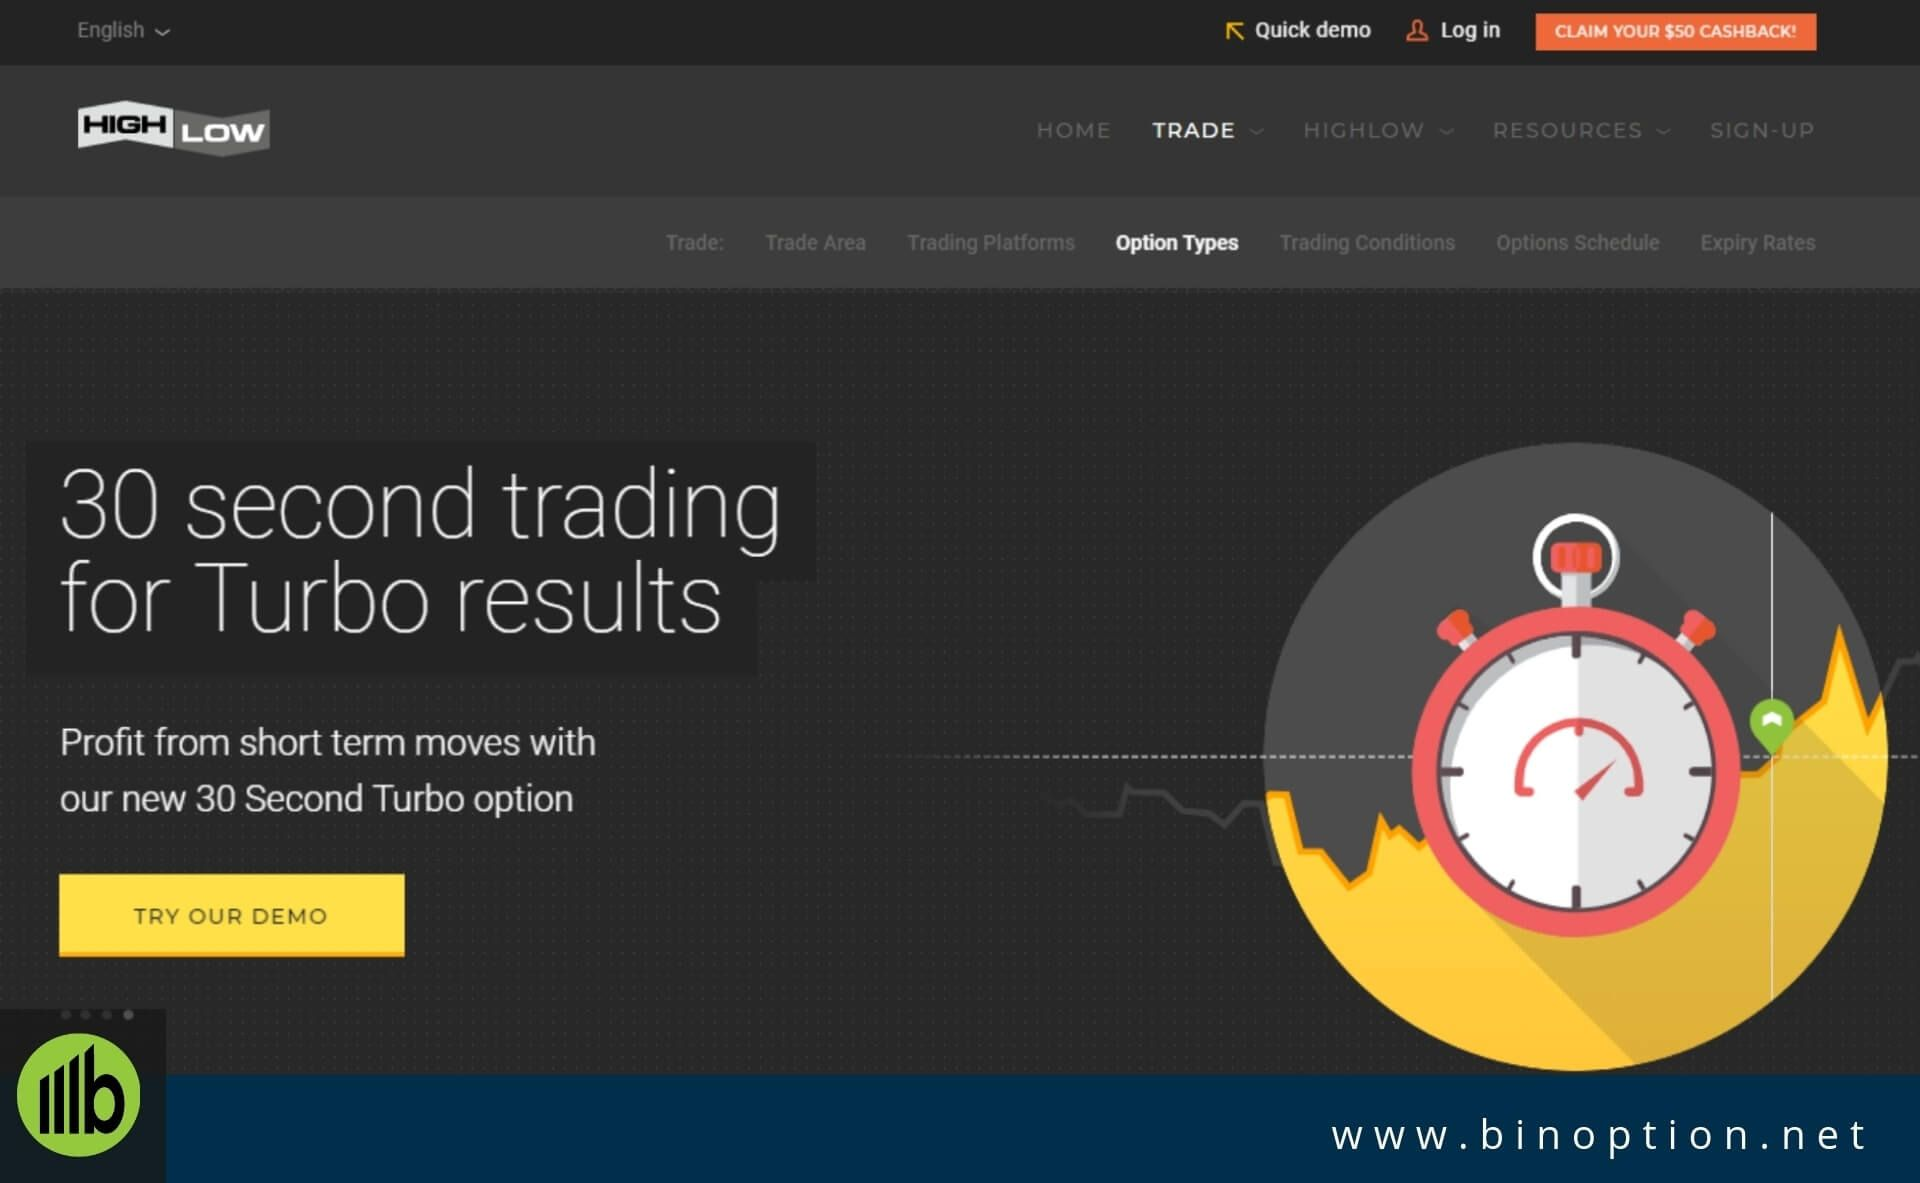 Unlimited demo forex rmct international investments reduce